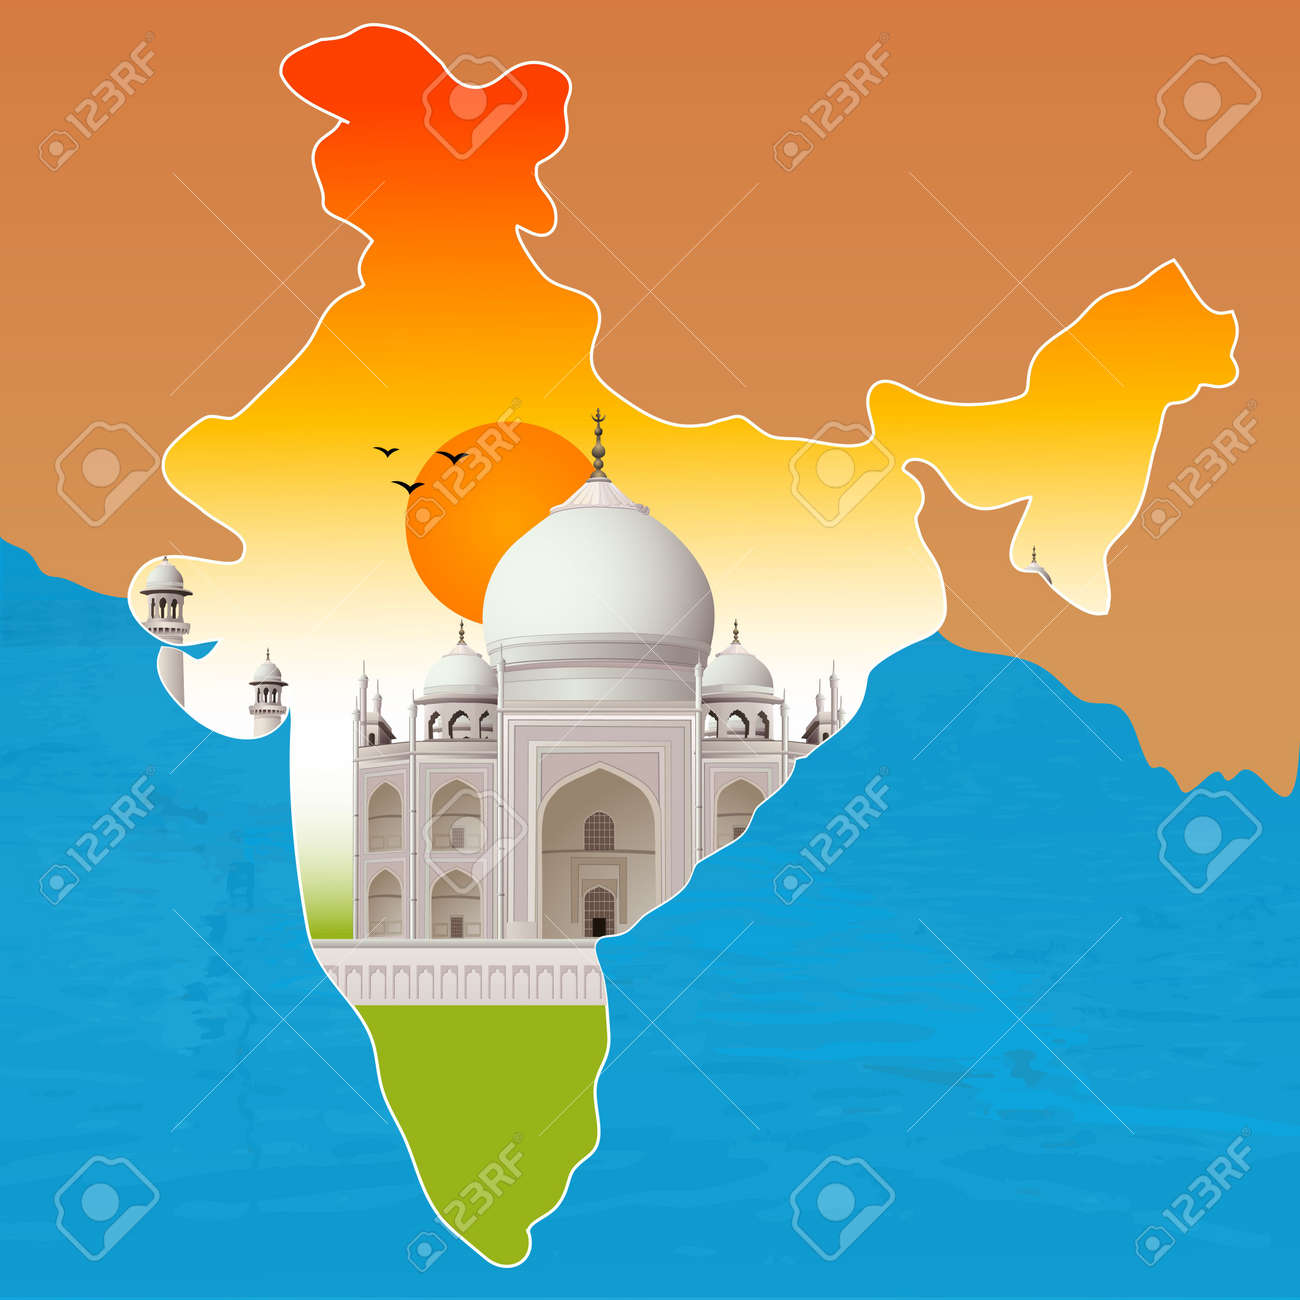 9 300 map of india stock illustrations cliparts and royalty free